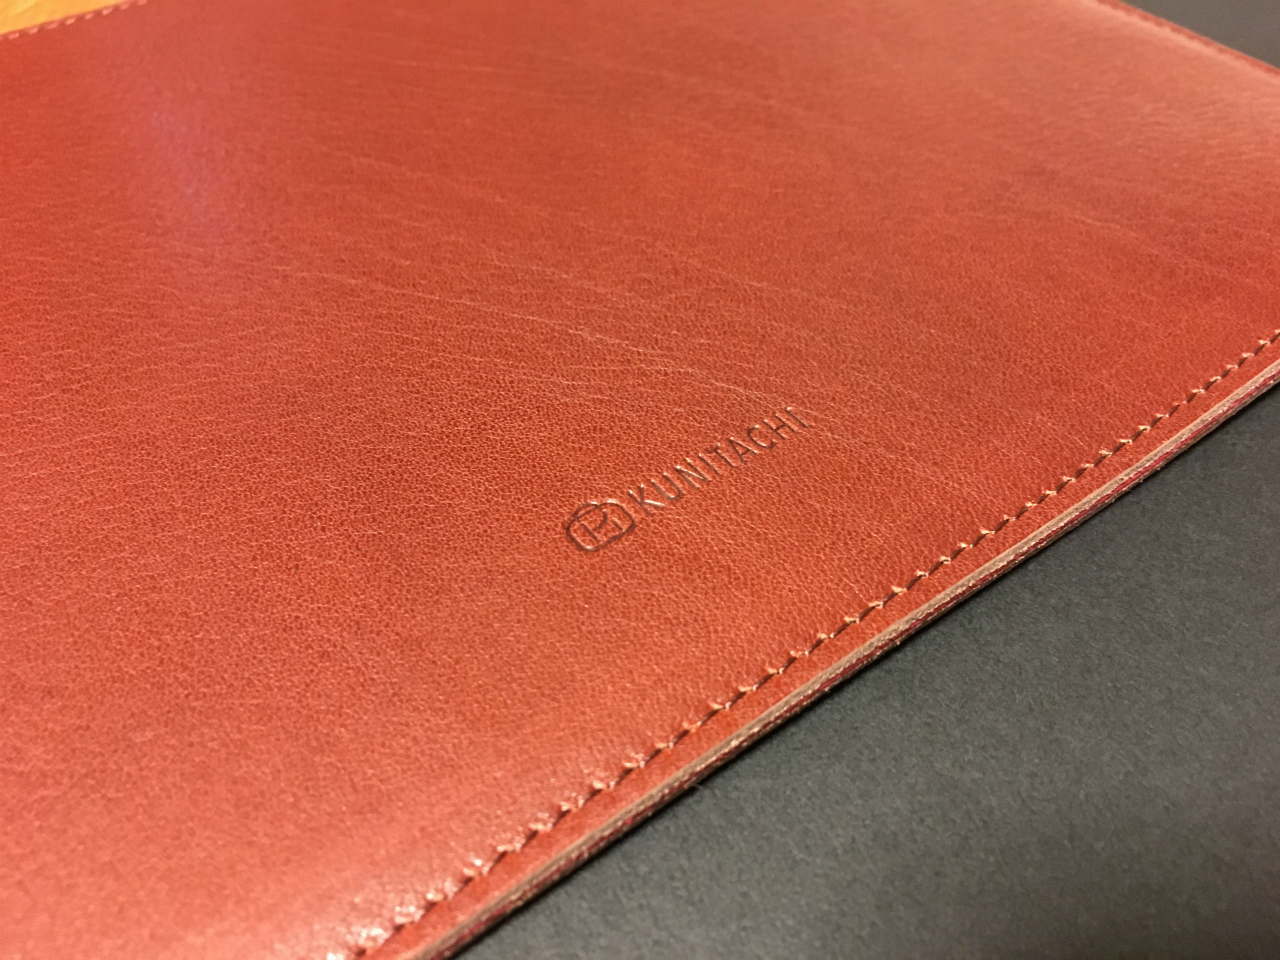 kunitachi-leather-sleeve-for-ipadpro-04